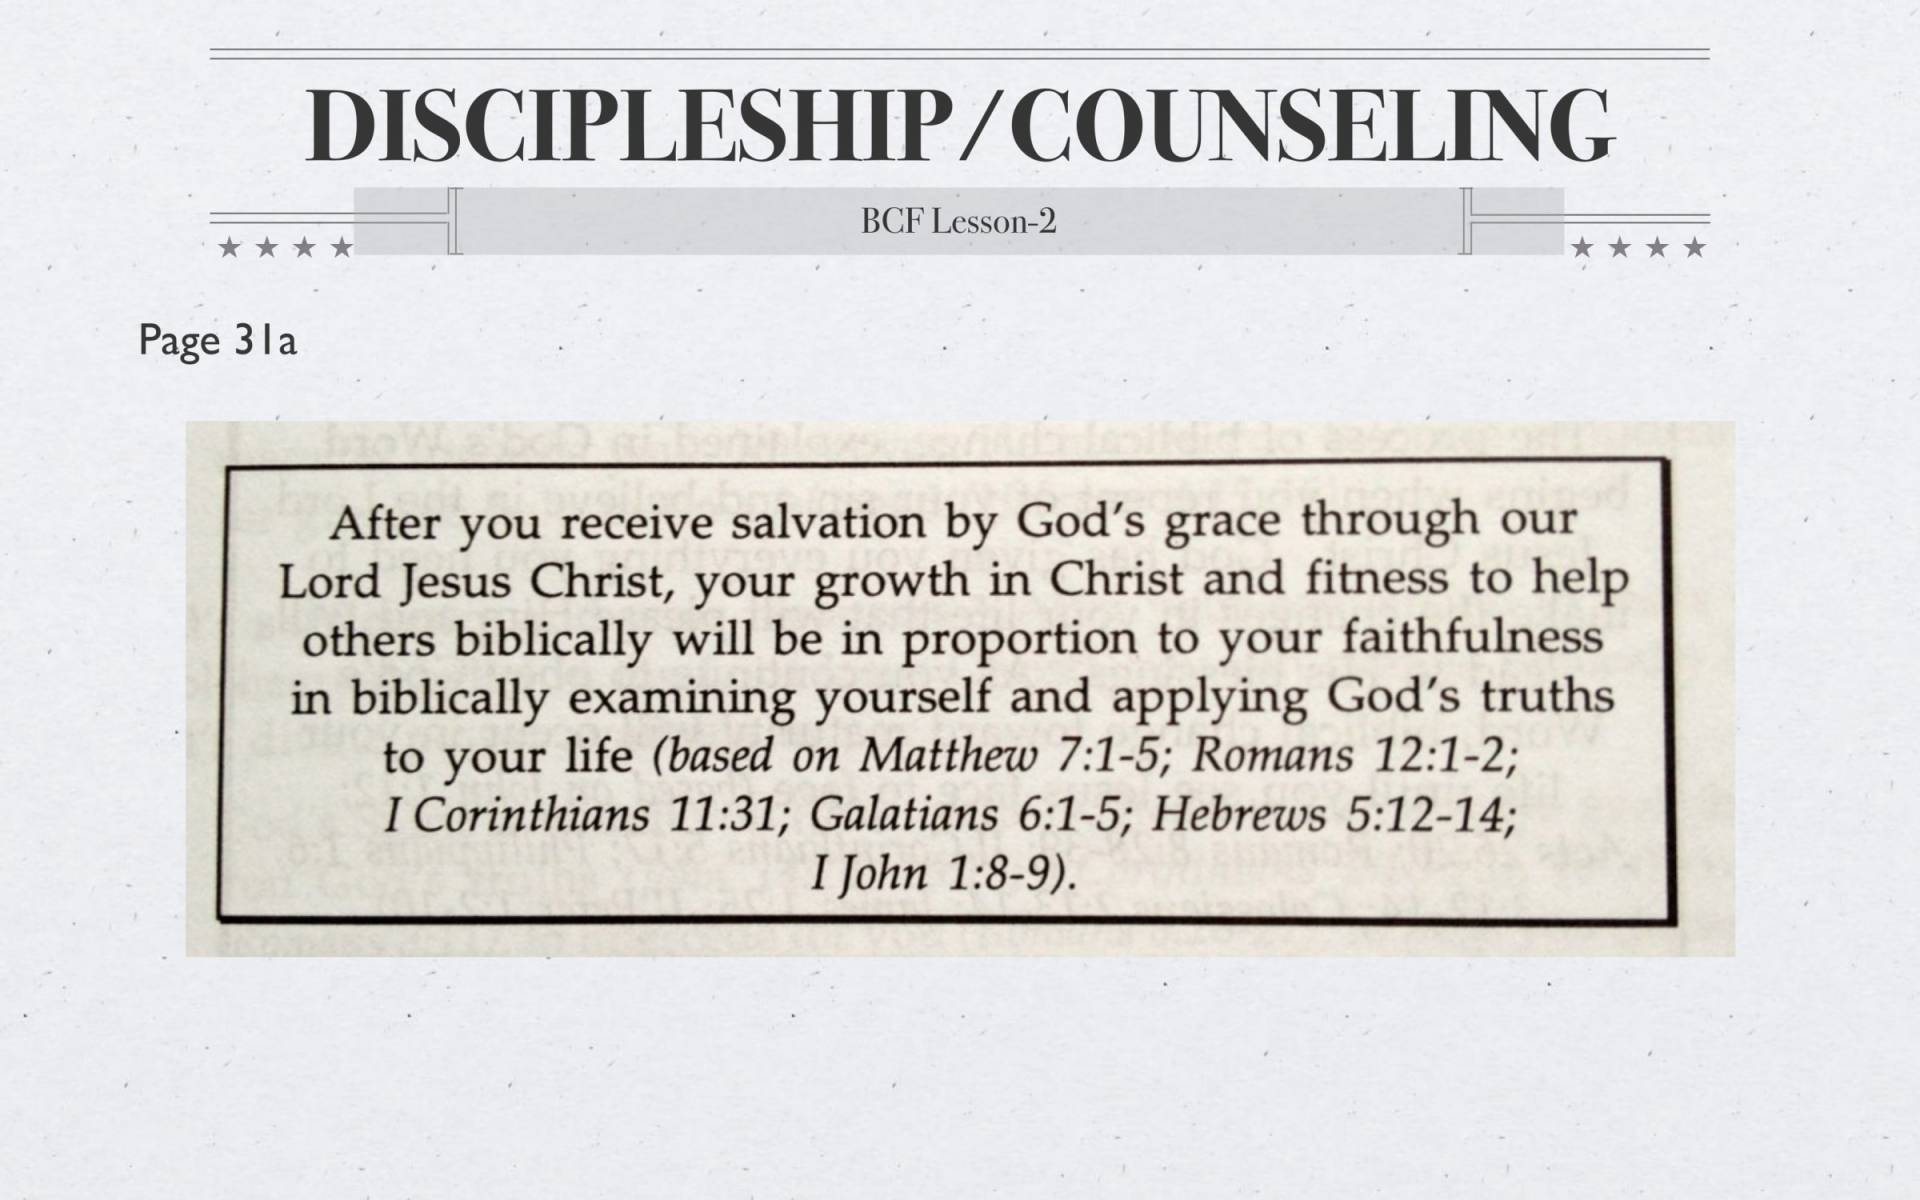 BC&D-04 - How To Focus Your Bible Study Time For Discipleship & Counseling-08